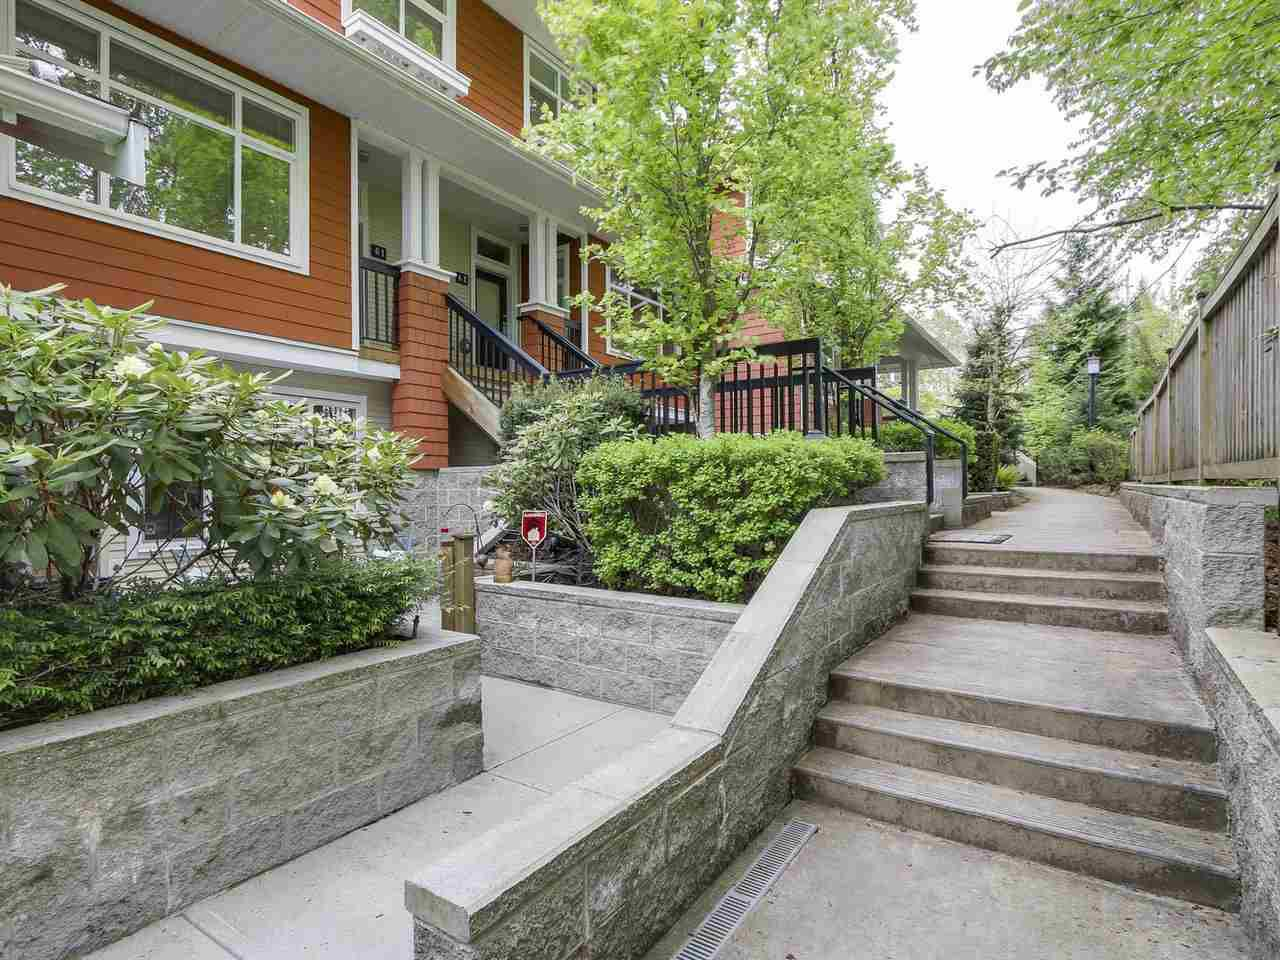 """Main Photo: 53 6878 SOUTHPOINT Drive in Burnaby: South Slope Townhouse for sale in """"CORTINA"""" (Burnaby South)  : MLS®# R2164793"""